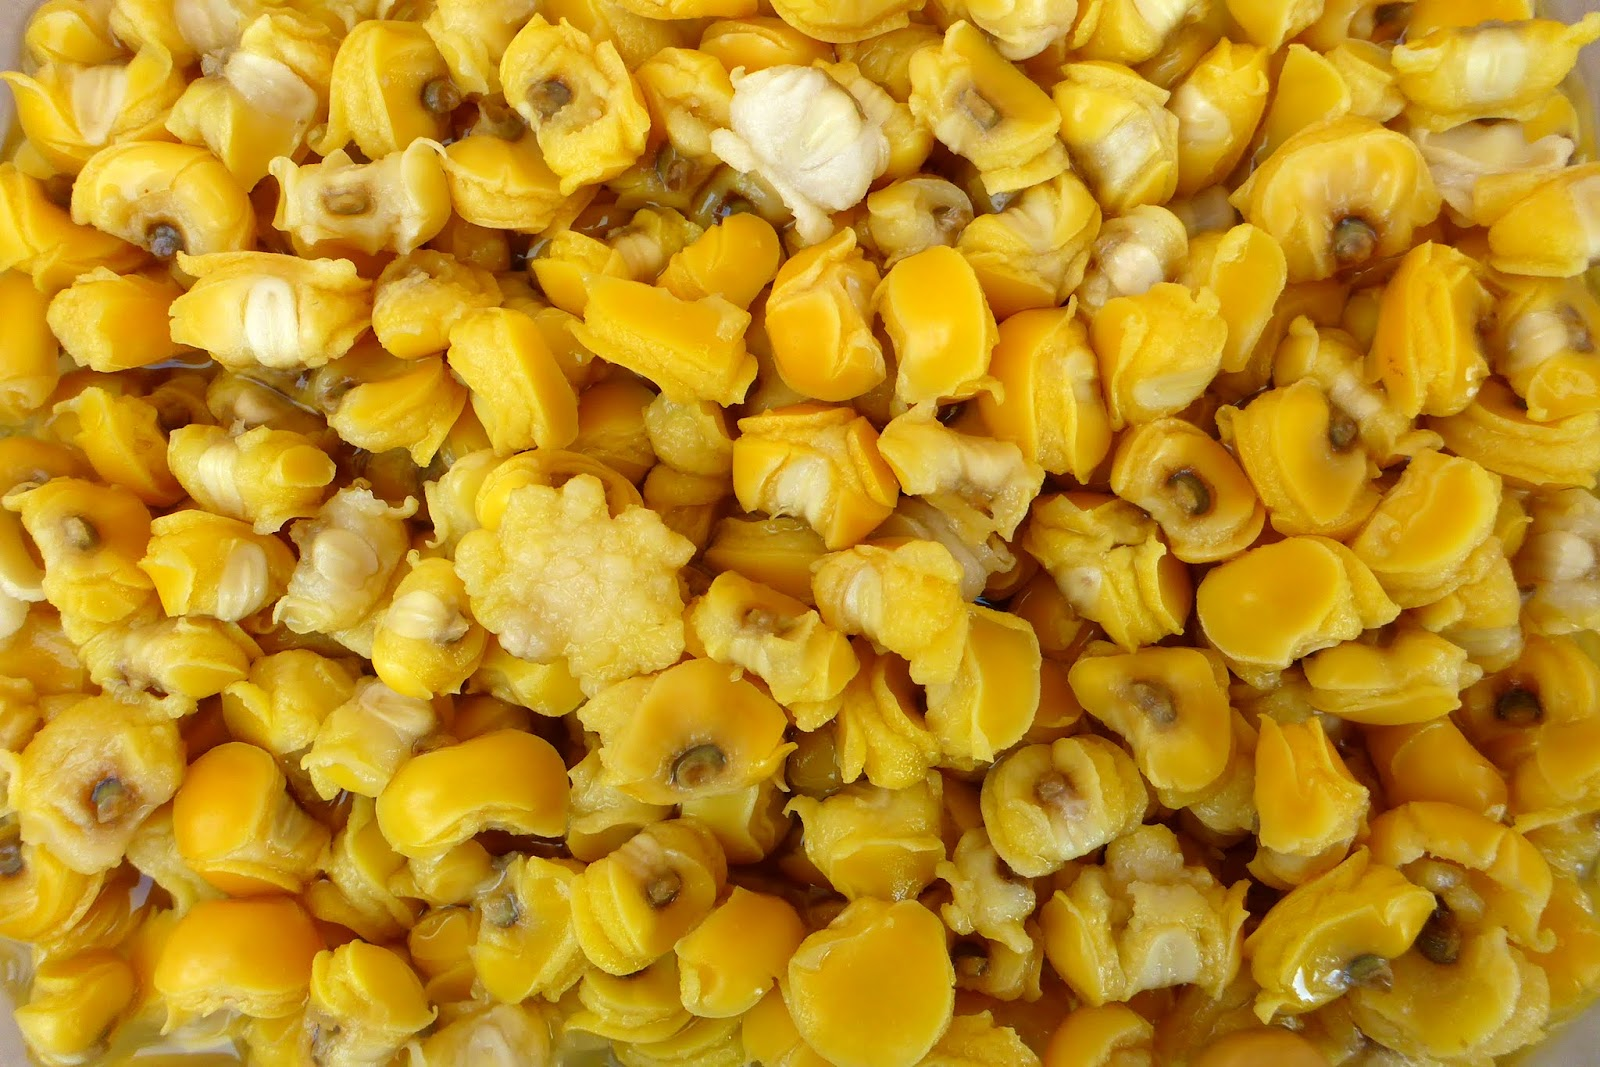 From seed to table nixtamalized corn for posole the cooked posole can be eaten hot out of the pot with just some butter or whatever seasoning you desire a classic mexican dish that features posole is ccuart Choice Image